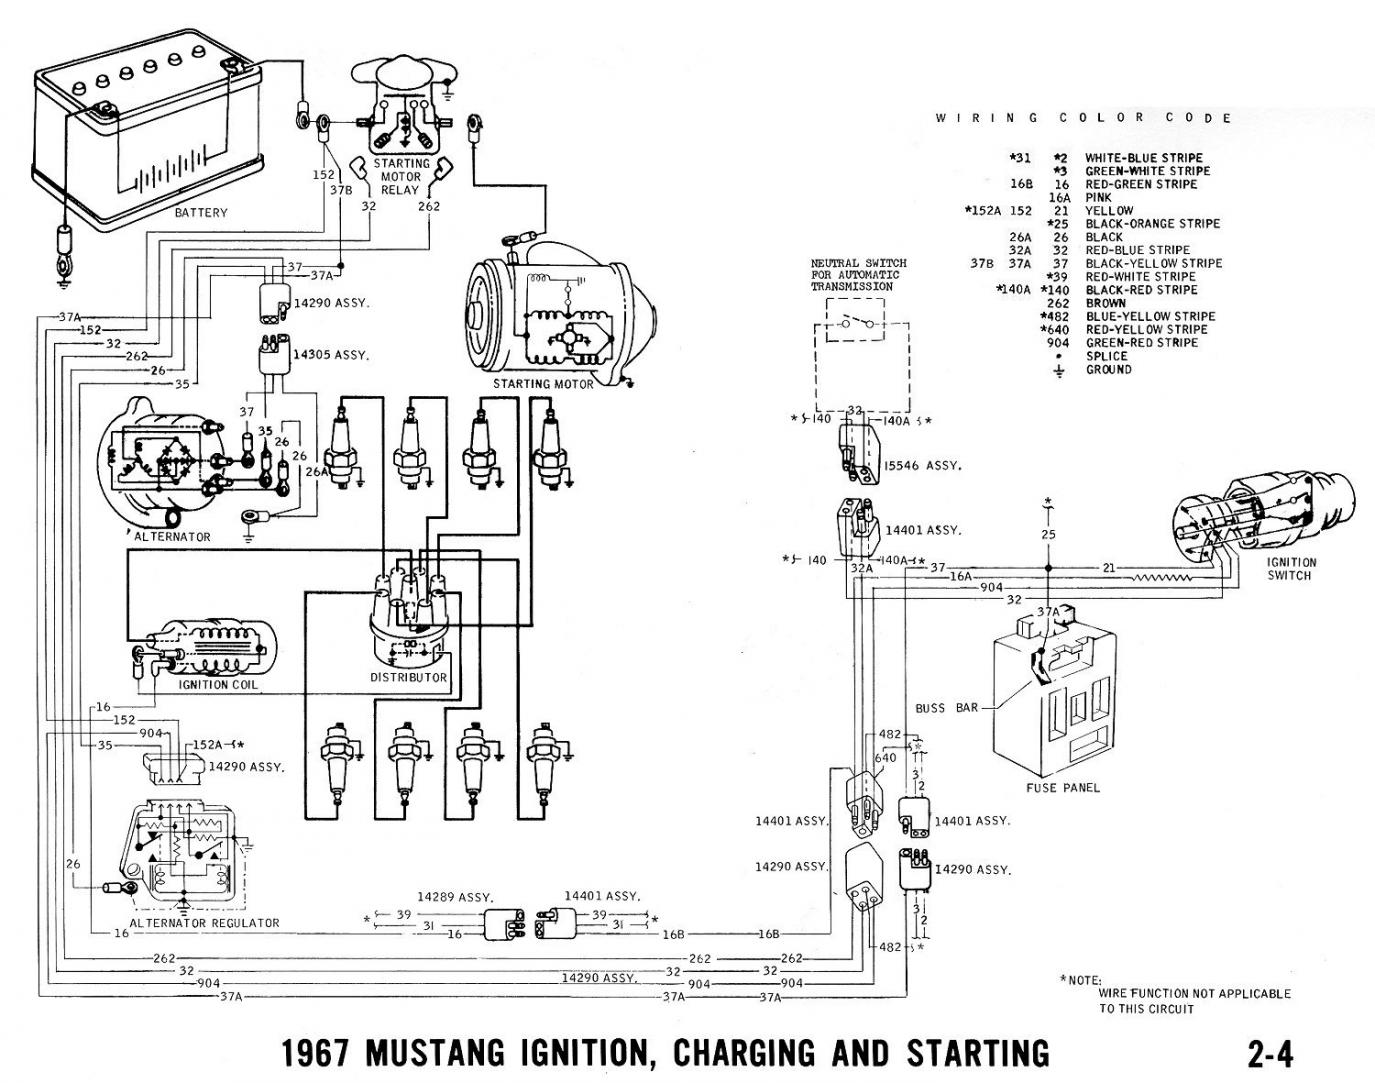 1967 Ford Mustang Ignition Switch Wiring - Enthusiast Wiring Diagrams  Ford Mustang Ignition Wiring Diagram on 1958 ford f100 wiring diagram, 1967 mustang horn wiring diagram, 81 chevy blazer wiring diagram, 1968 thunderbird wiring diagram, chevy colorado transfer case diagram, 1985 ford f-250 fuel pump wiring diagram, 1967 mustang dash wiring diagram, 1966 ford thunderbird wiring diagram, 1976 chevy corvette wiring diagram, 1966 ford f100 wiring diagram, 1966 mustang turn signal wiring diagram, 1966 mustang dash wiring diagram, 1966 ford mustang charging system diagram, 2003 ford mustang ignition wiring diagram, 1967 mustang radio wiring diagram, 2000 ford taurus coolant system diagram, 1968 mustang wiring diagram, ford truck engine wiring diagram, car door panel diagram, 1966 ford mustang fuse box diagram,